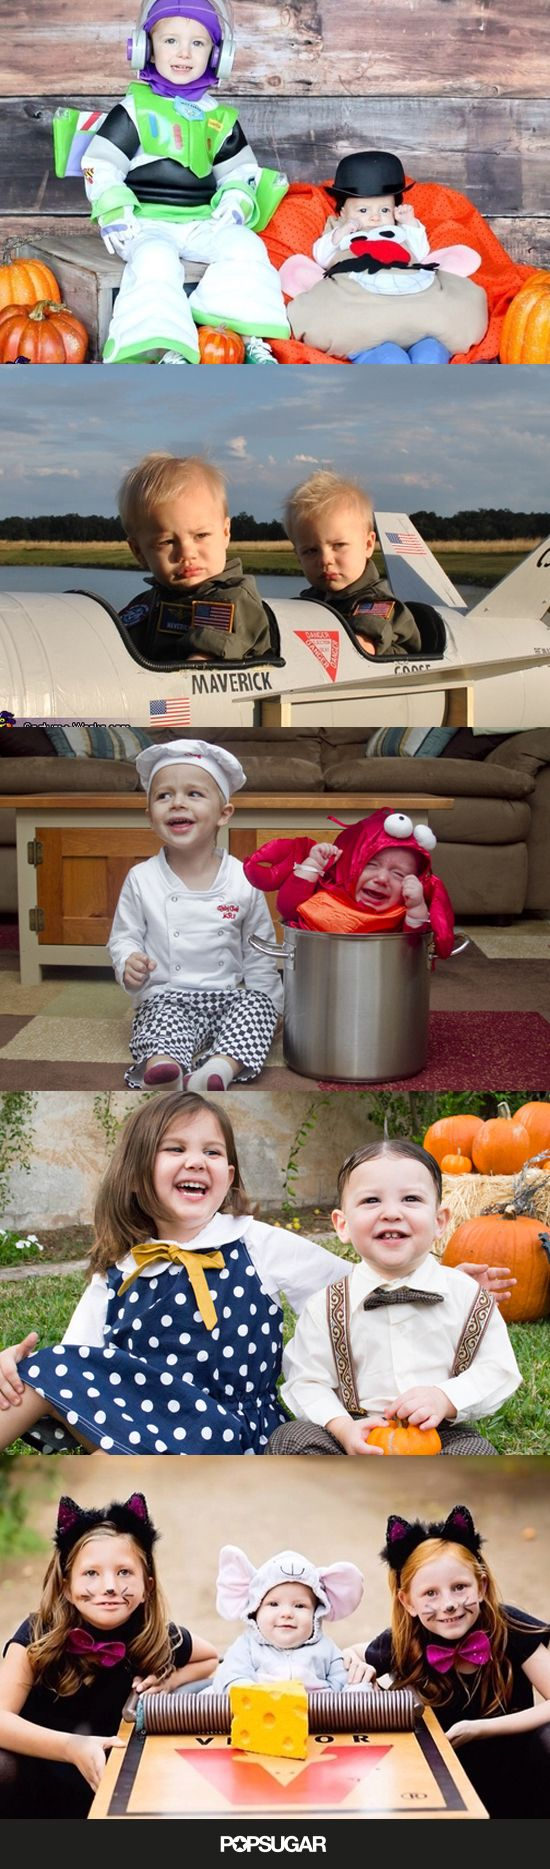 Win Halloween With These 41 Sibling Costume Ideas